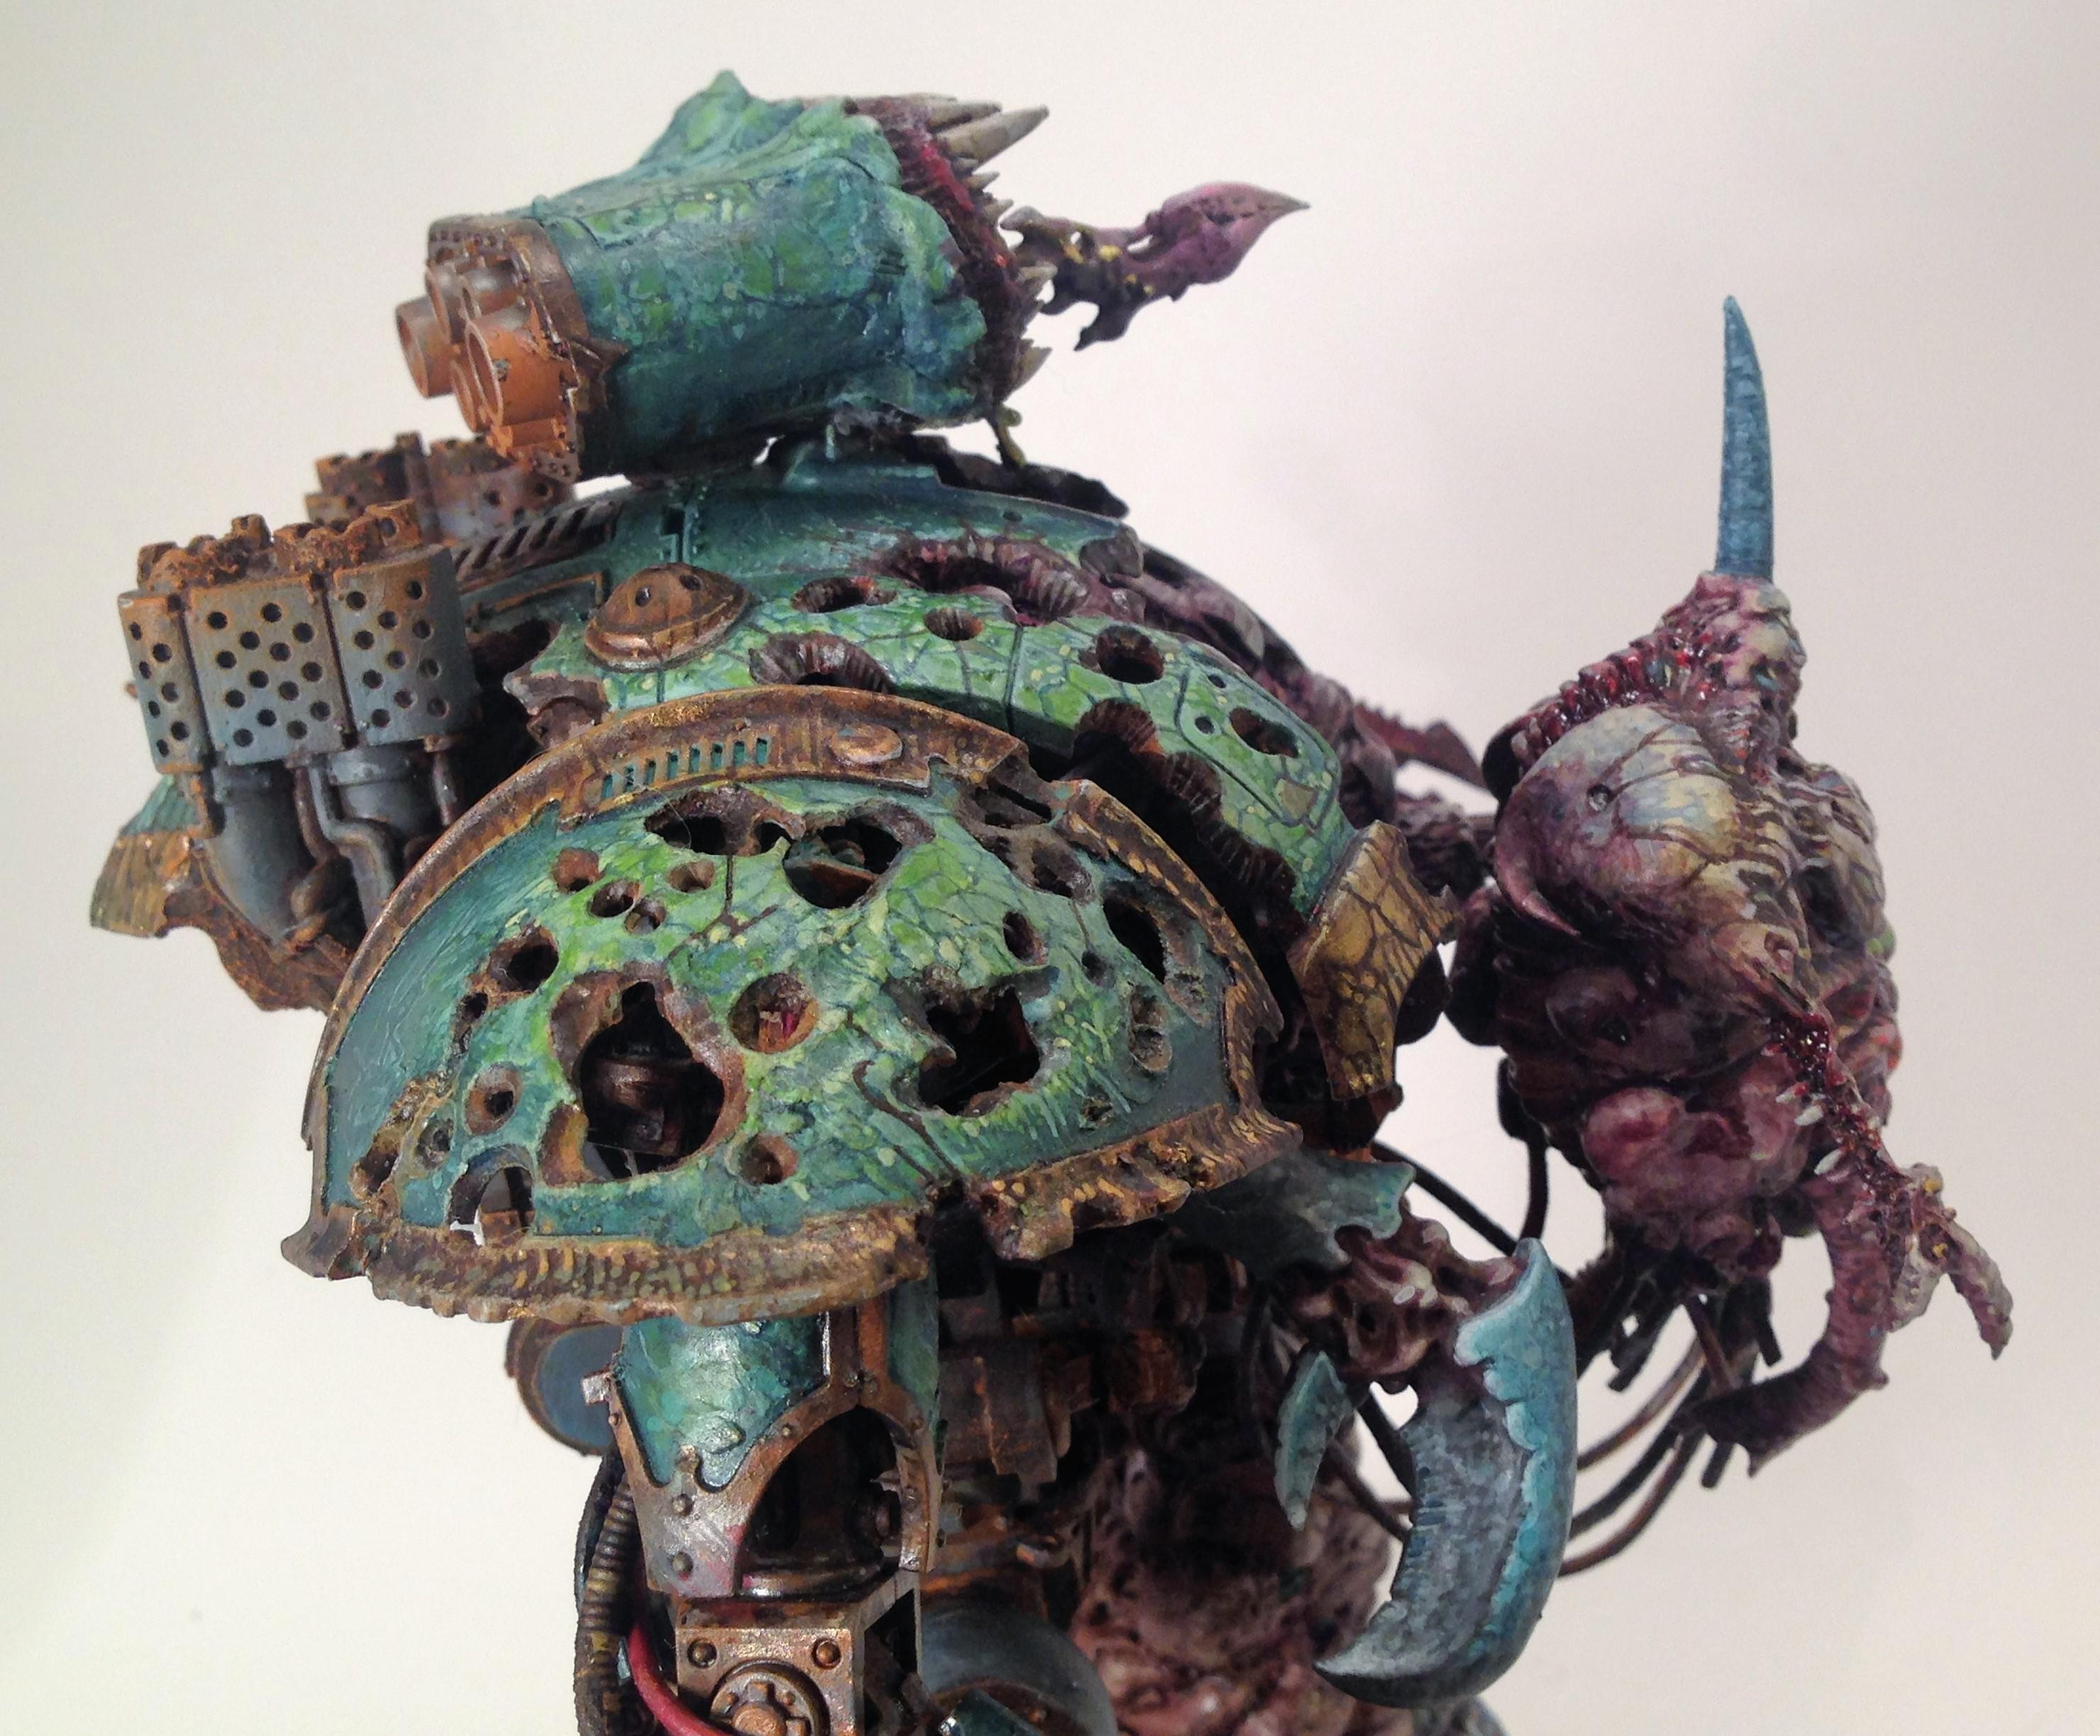 Imperial Knight Nurgle Chaos Converted, Warhammer 40,000